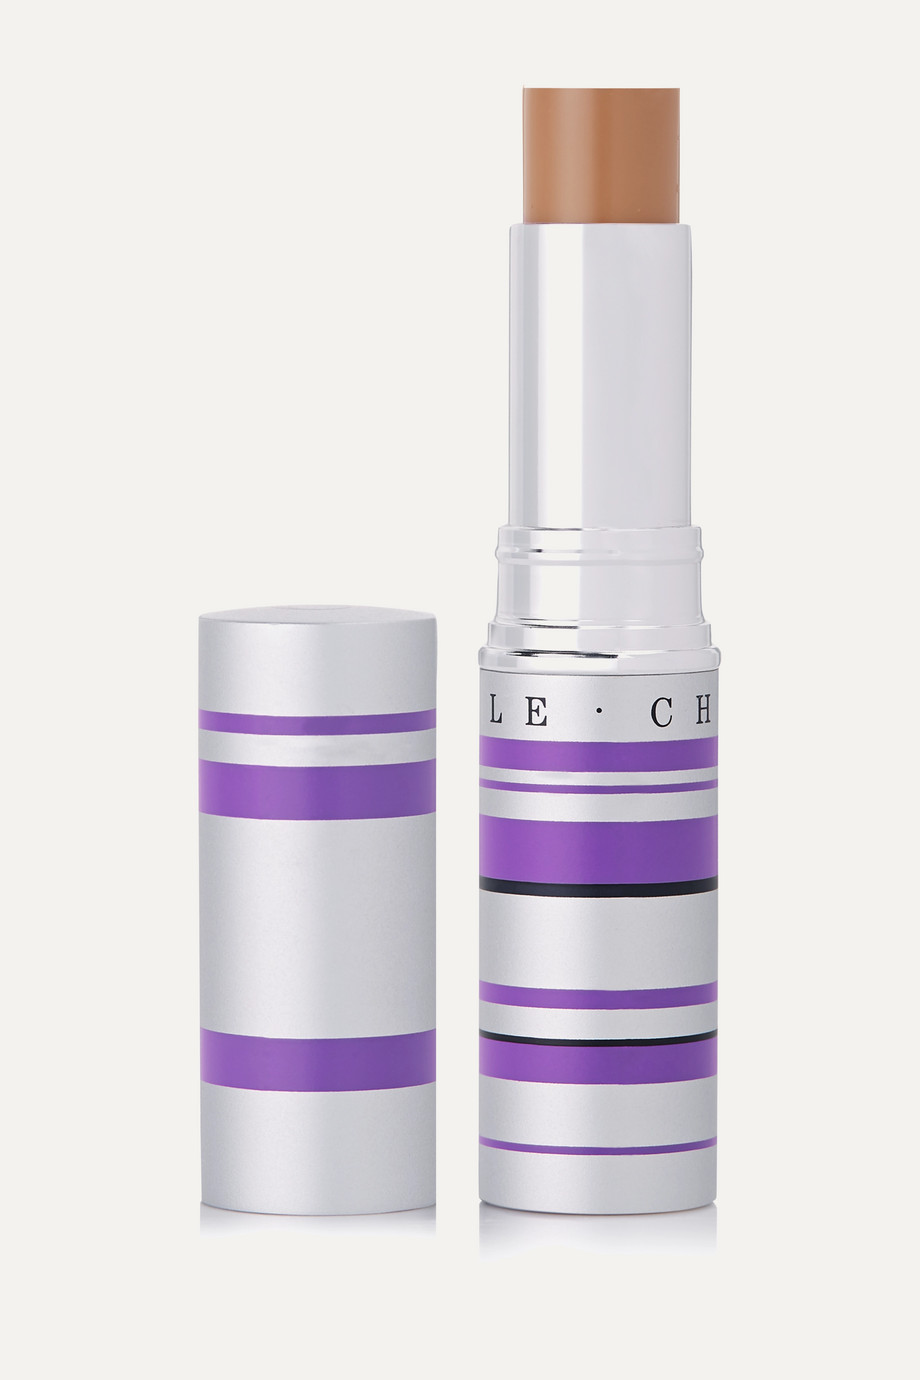 Chantecaille Real Skin + Eye and Face Stick - 6